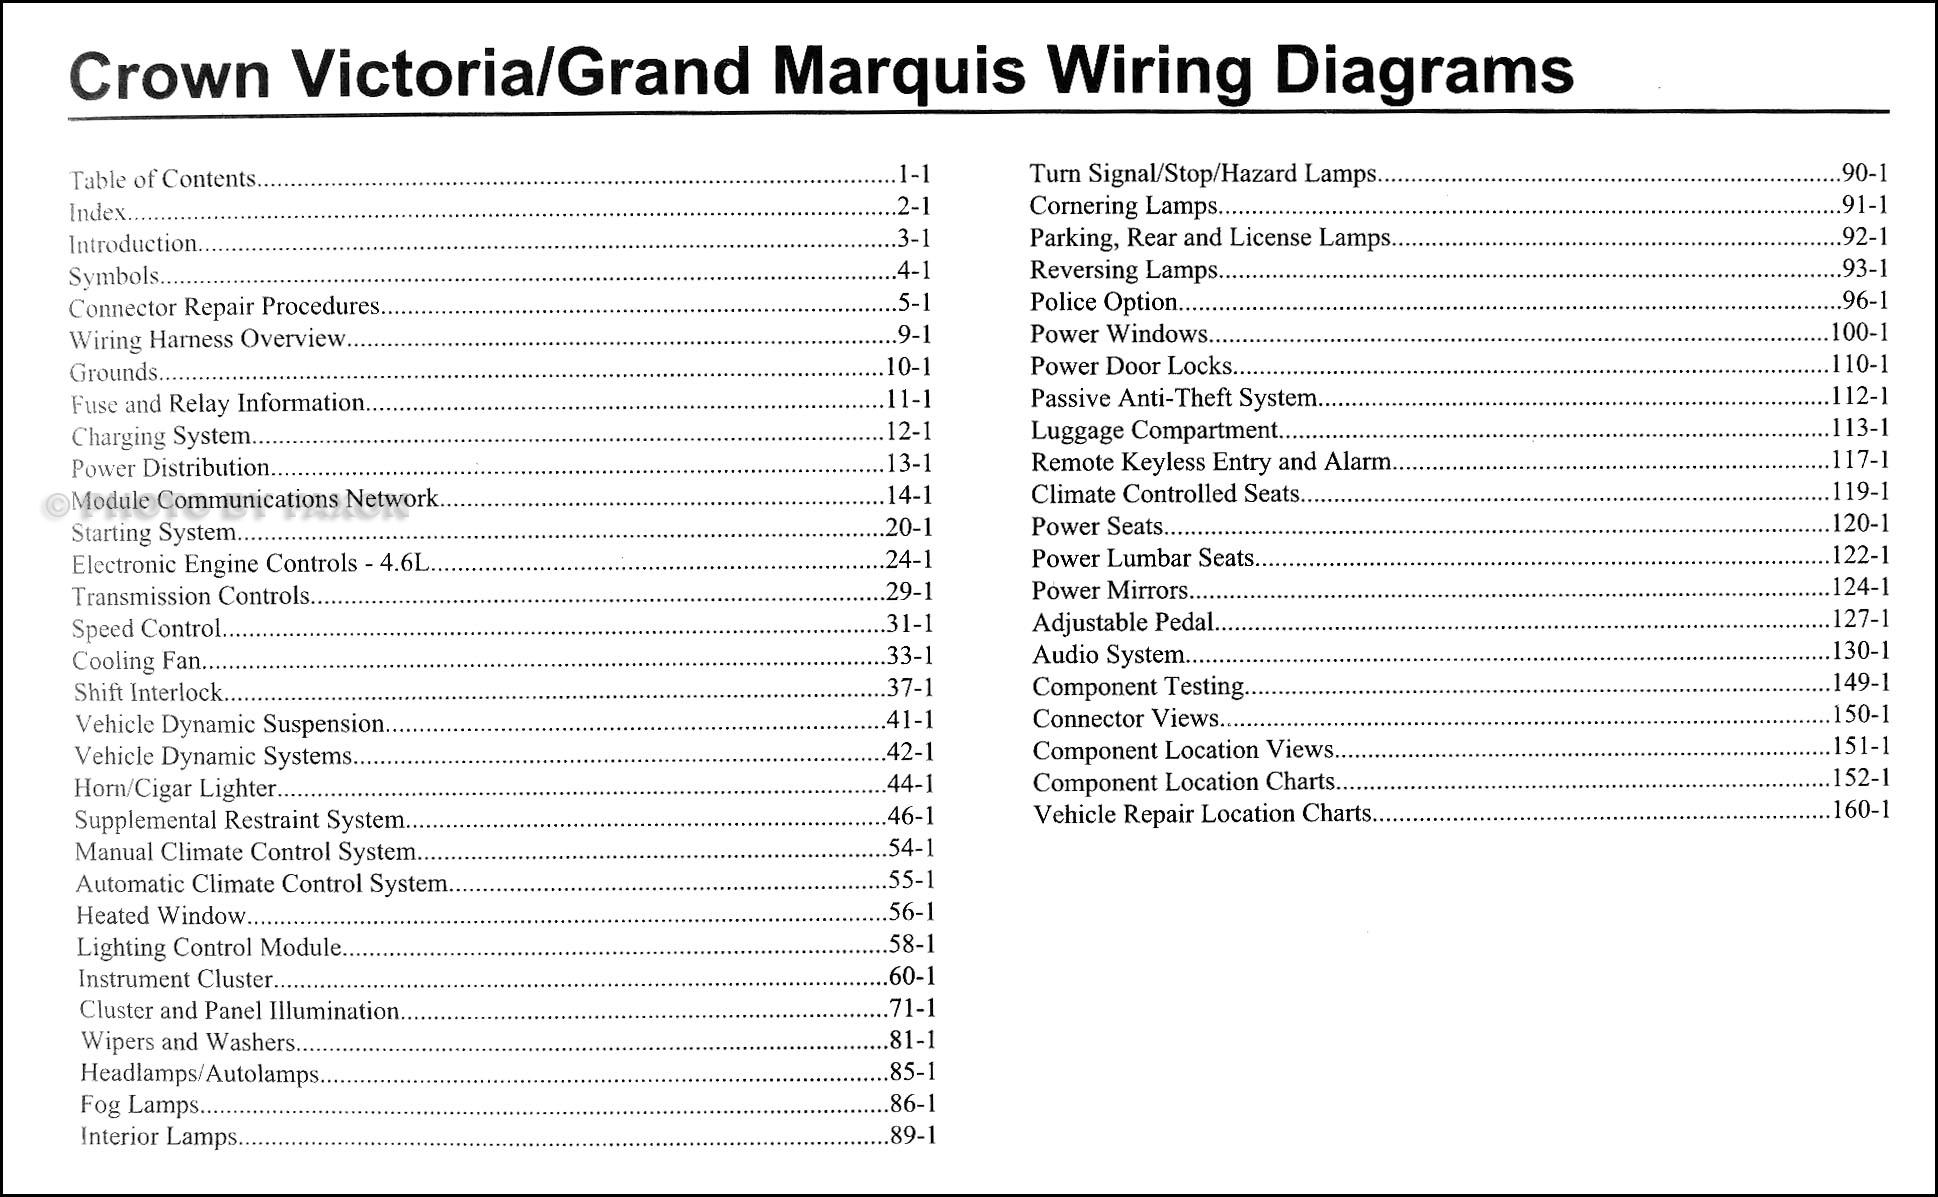 hight resolution of 2009 crown victoria grand marquis original wiring diagram manual 2009fordcrownvictoriaowd